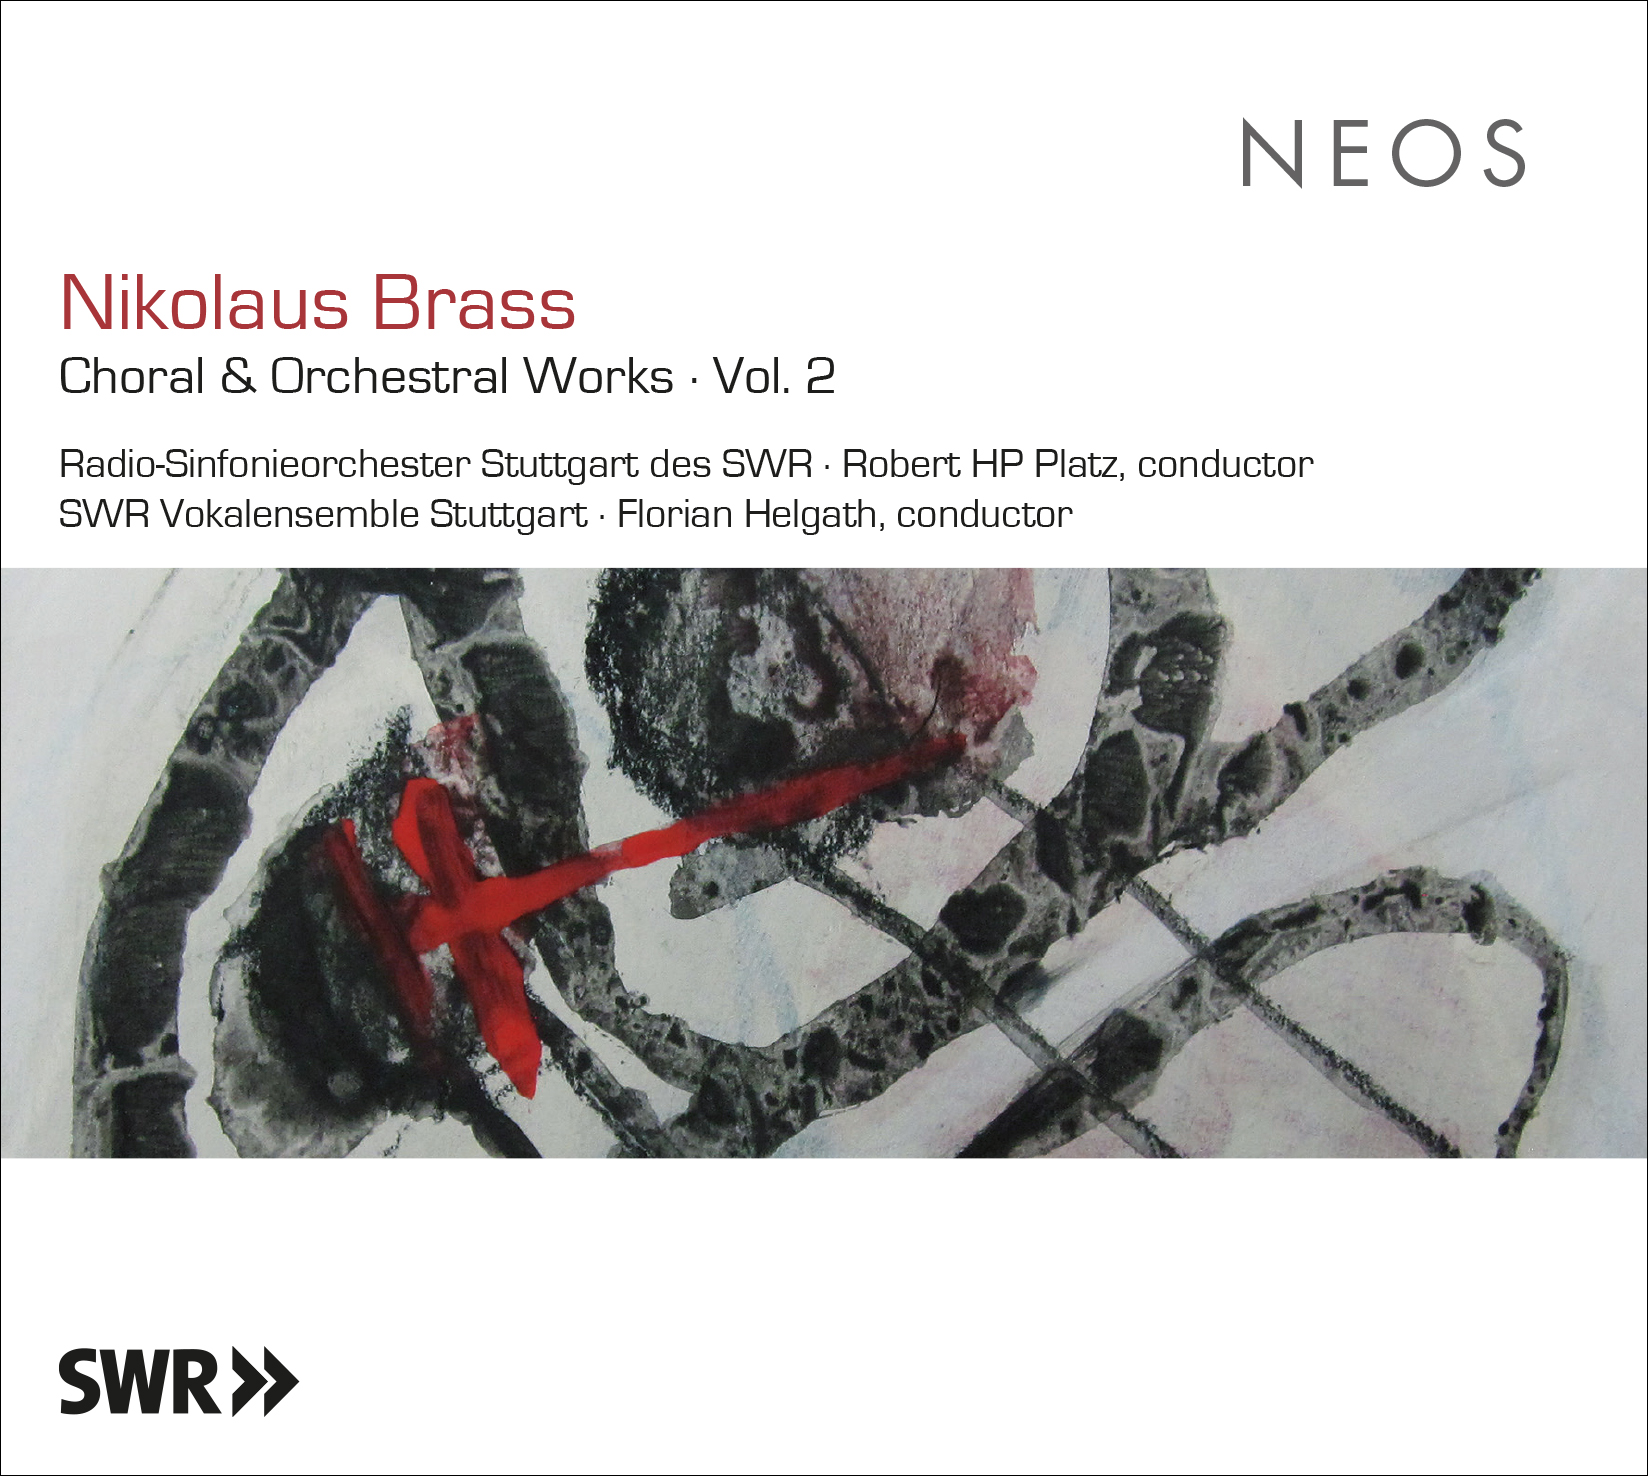 NEOS Music | your online shop for contemporary music, jazz